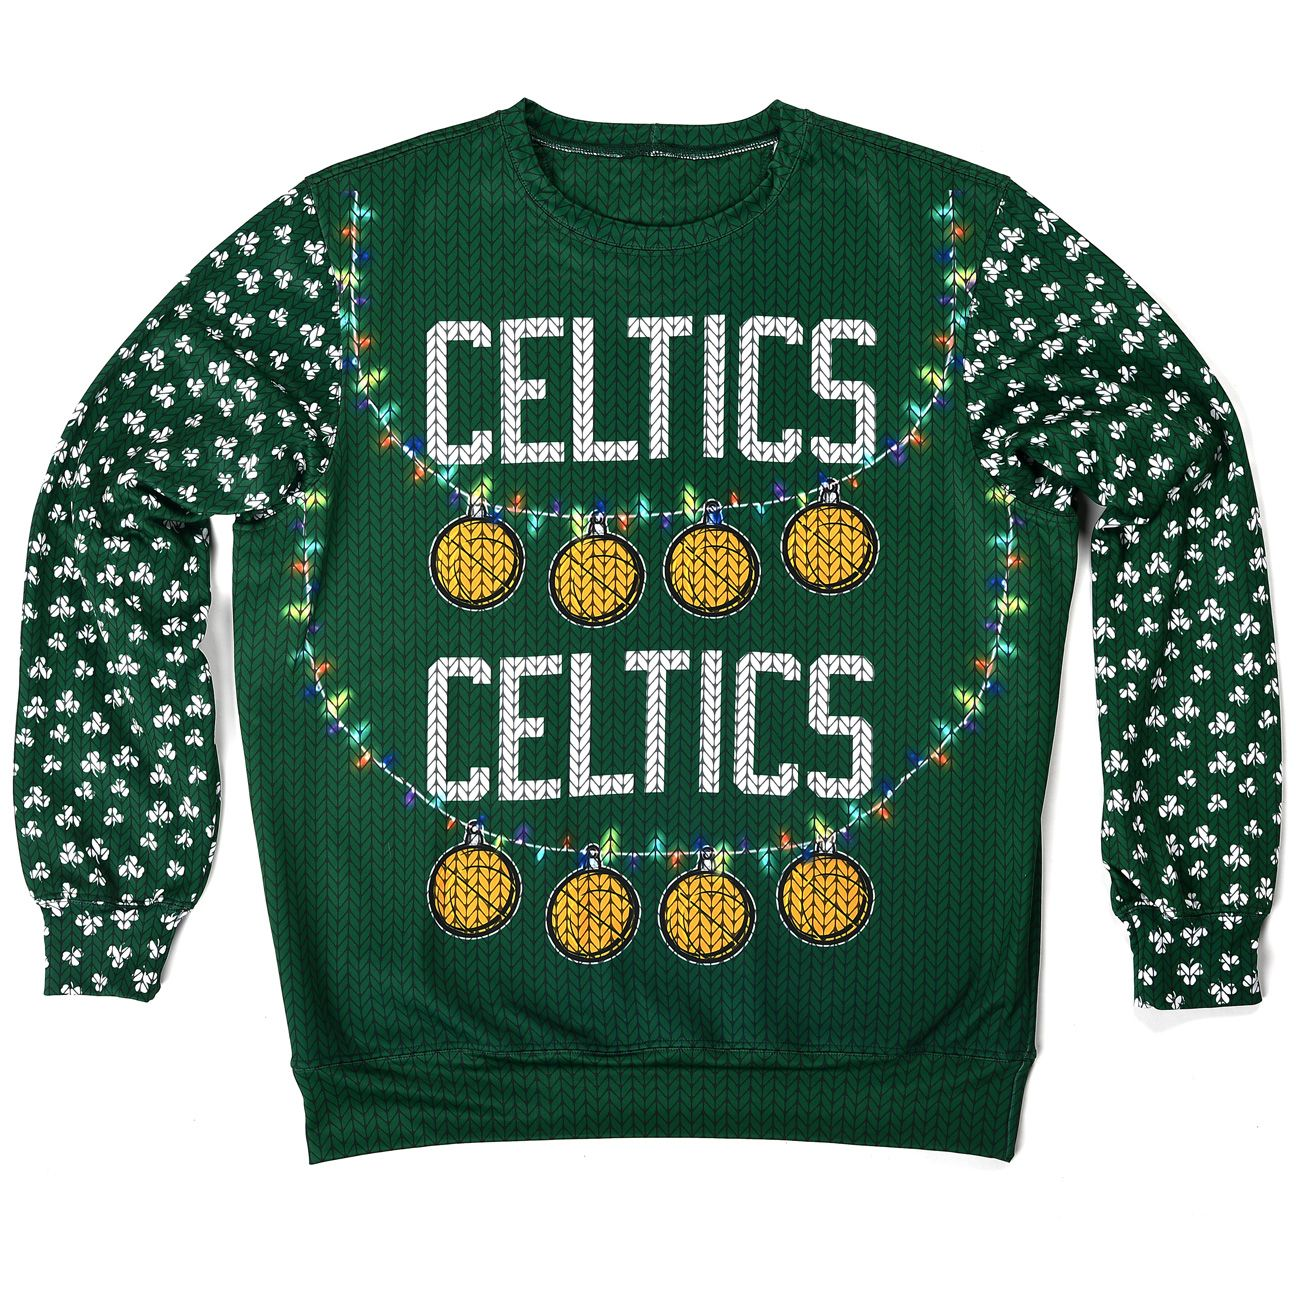 Baron Davis designs ugly NBA sweaters for the Warriors, Knicks ...